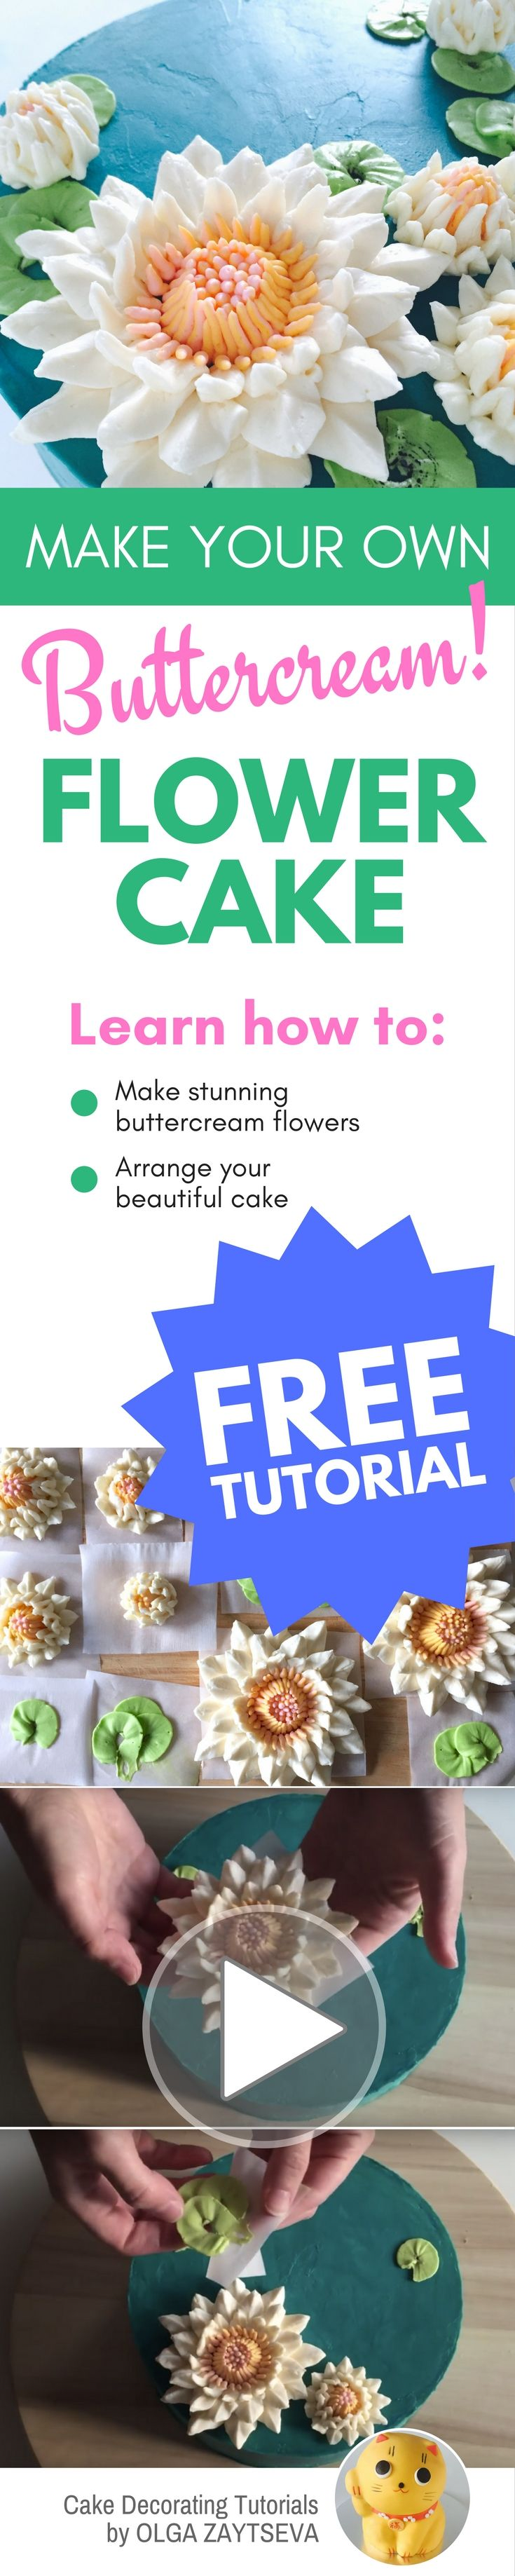 How to make Buttercream Water Lily cake - Cake decorating tutorial by Olga Zaytseva. Learn how to make very trendy buttercream Water Lily flowers and create this gorgeous cake. #cakedecorating #cakedecoratingtutorial #buttercreamflowercake #buttercreamflowers